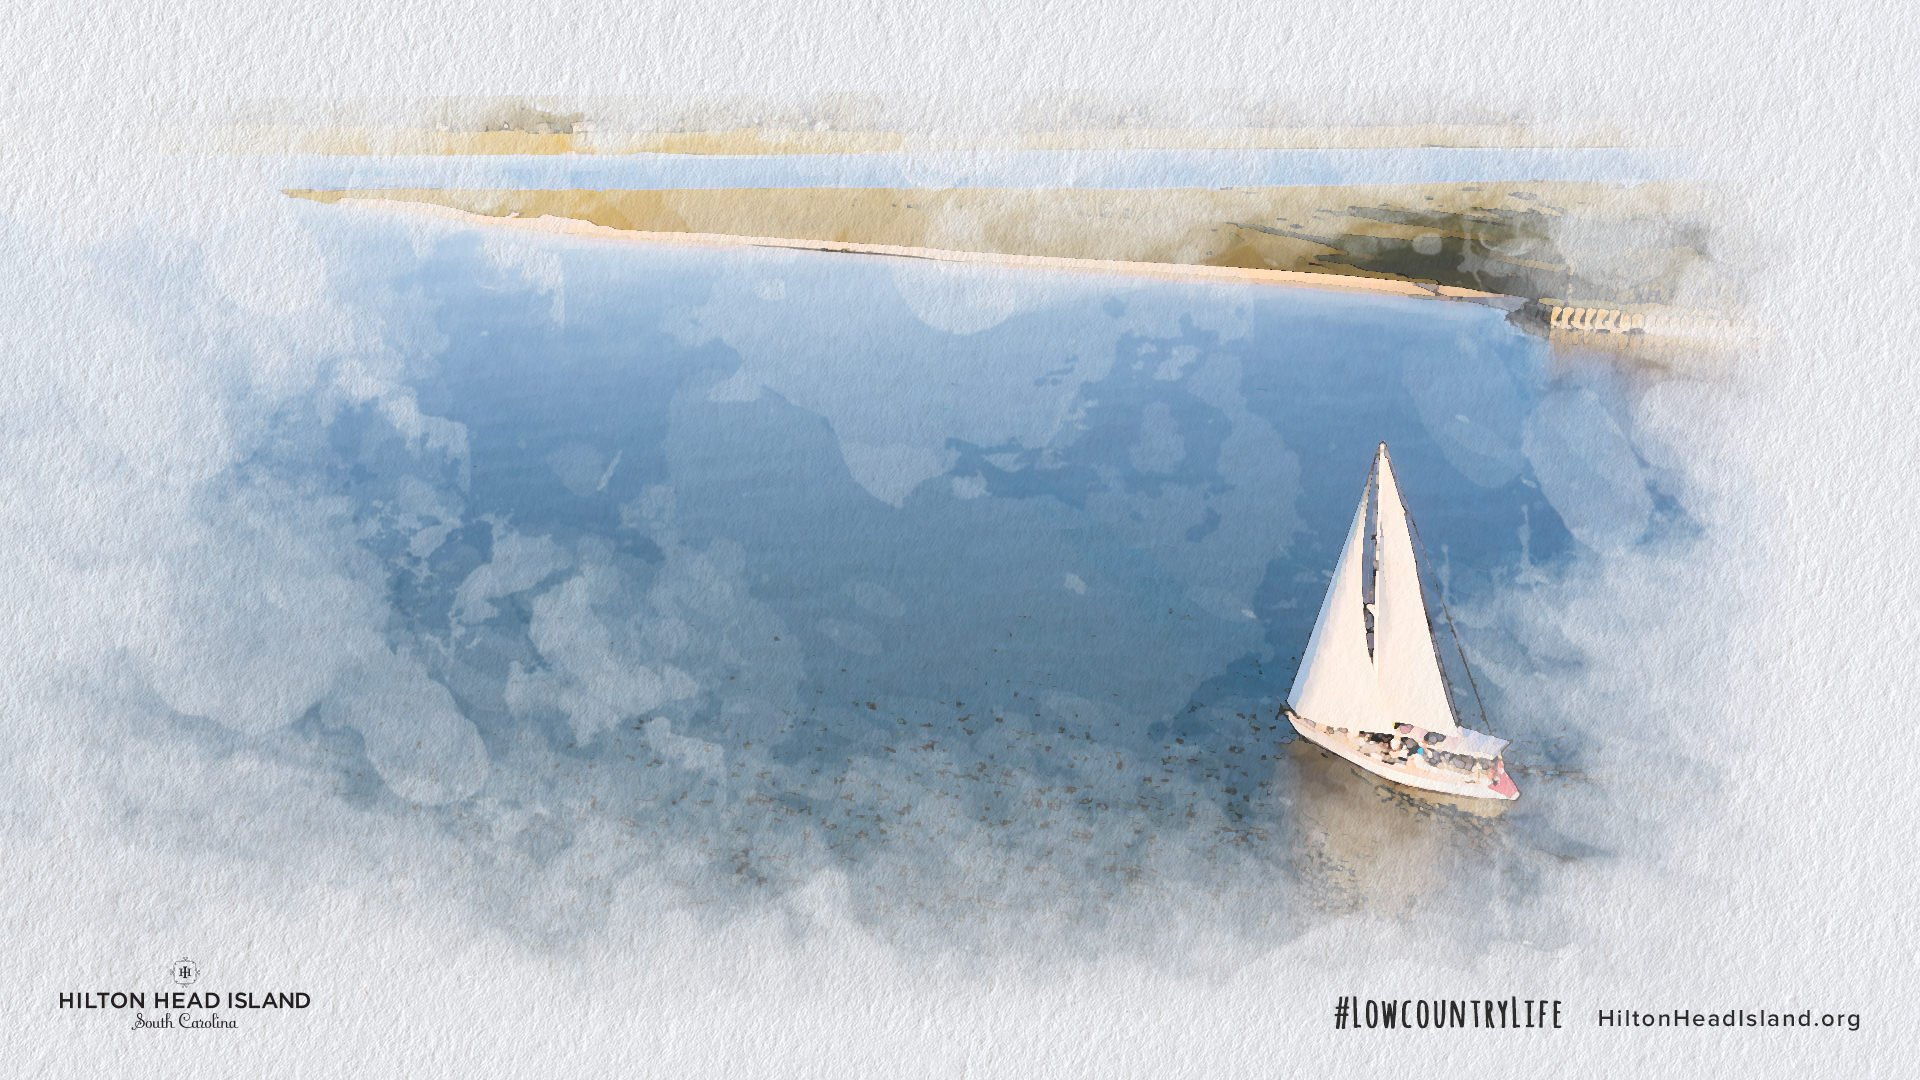 Watercolor image of a sailboat on Hilton Head Island